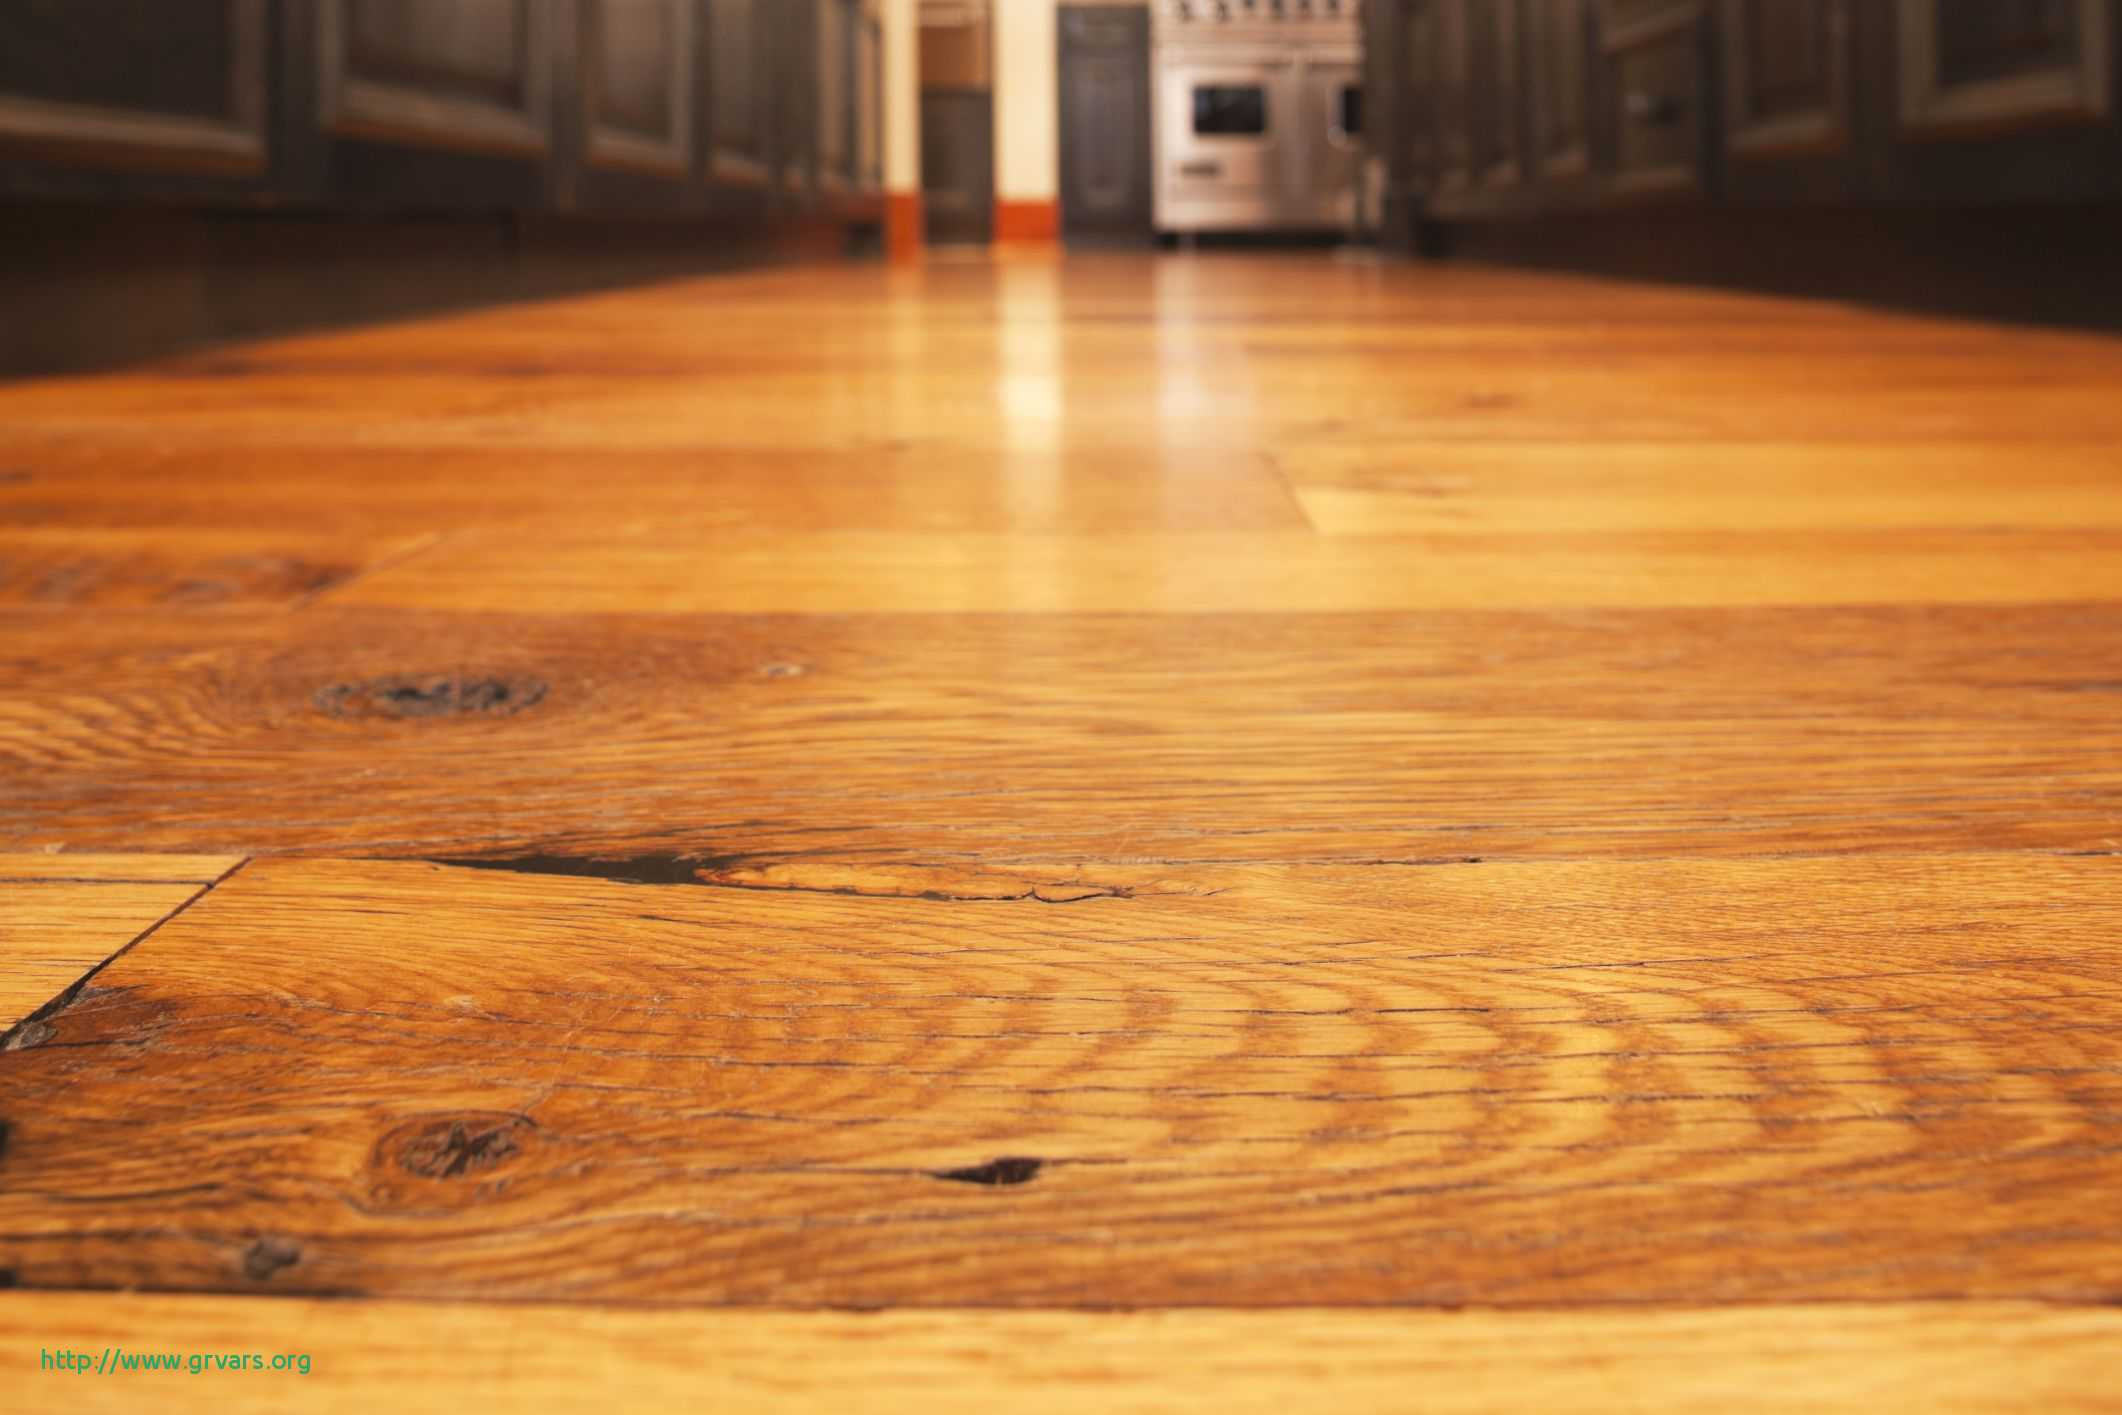 bruce lock and fold hardwood flooring reviews of 16 inspirant bellawood hardwood floor cleaner ingredients ideas blog within tudor bellawood hardwood floor cleaner ingredients luxe why a microbevel is your flooring